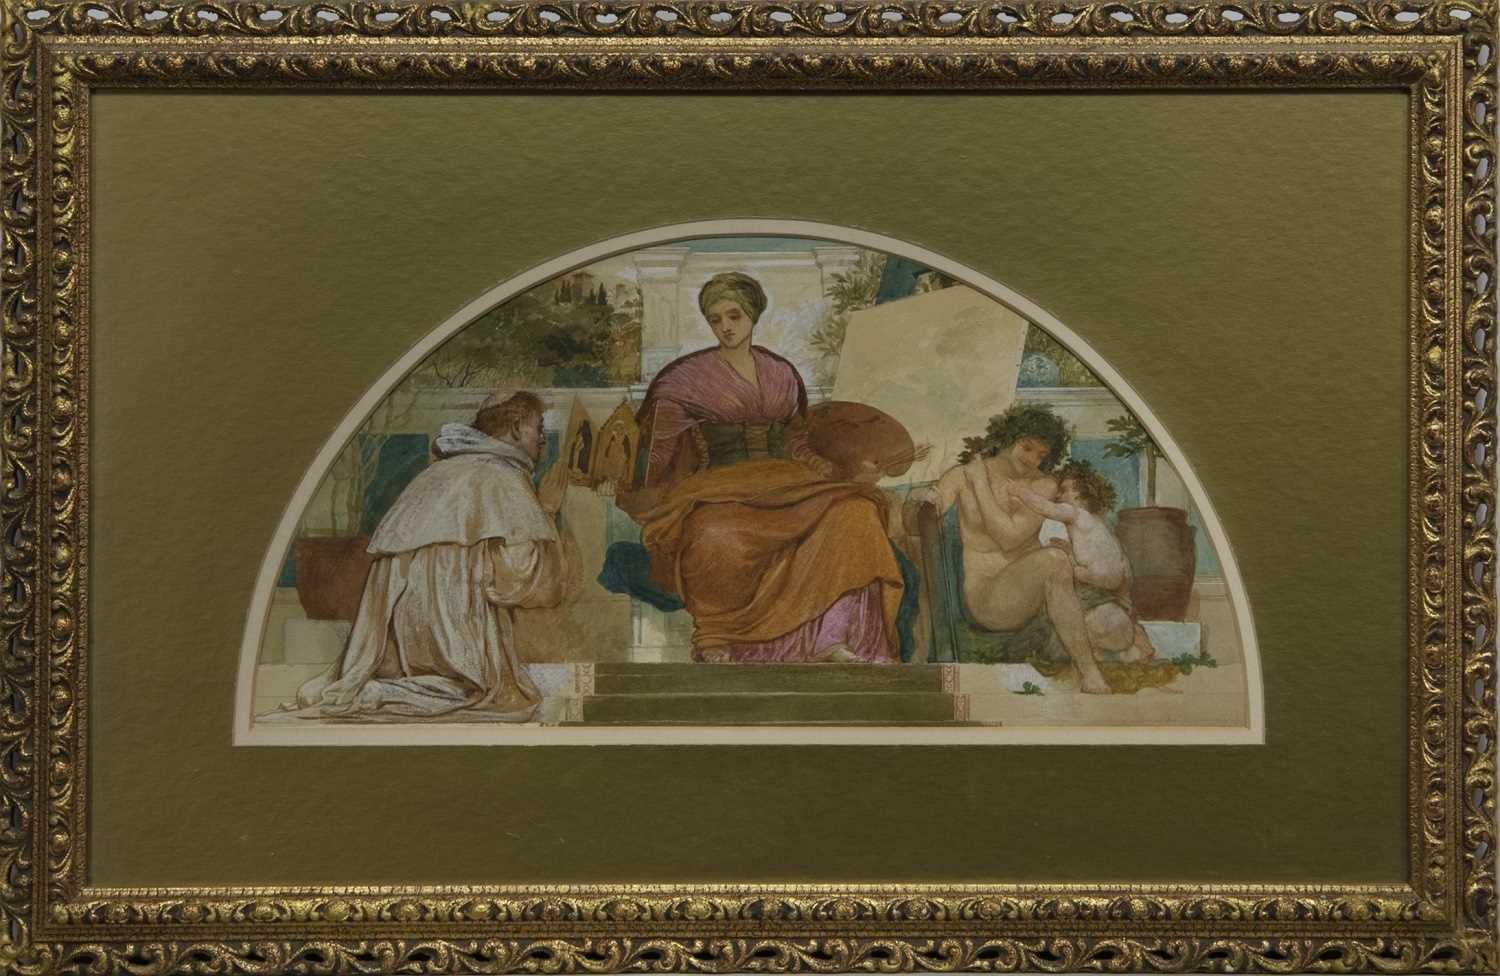 Lot 52 - THE PAINTING LESSON, A WATERCOLOUR ATTRIBUTED TO JOSEPH NOEL PATON